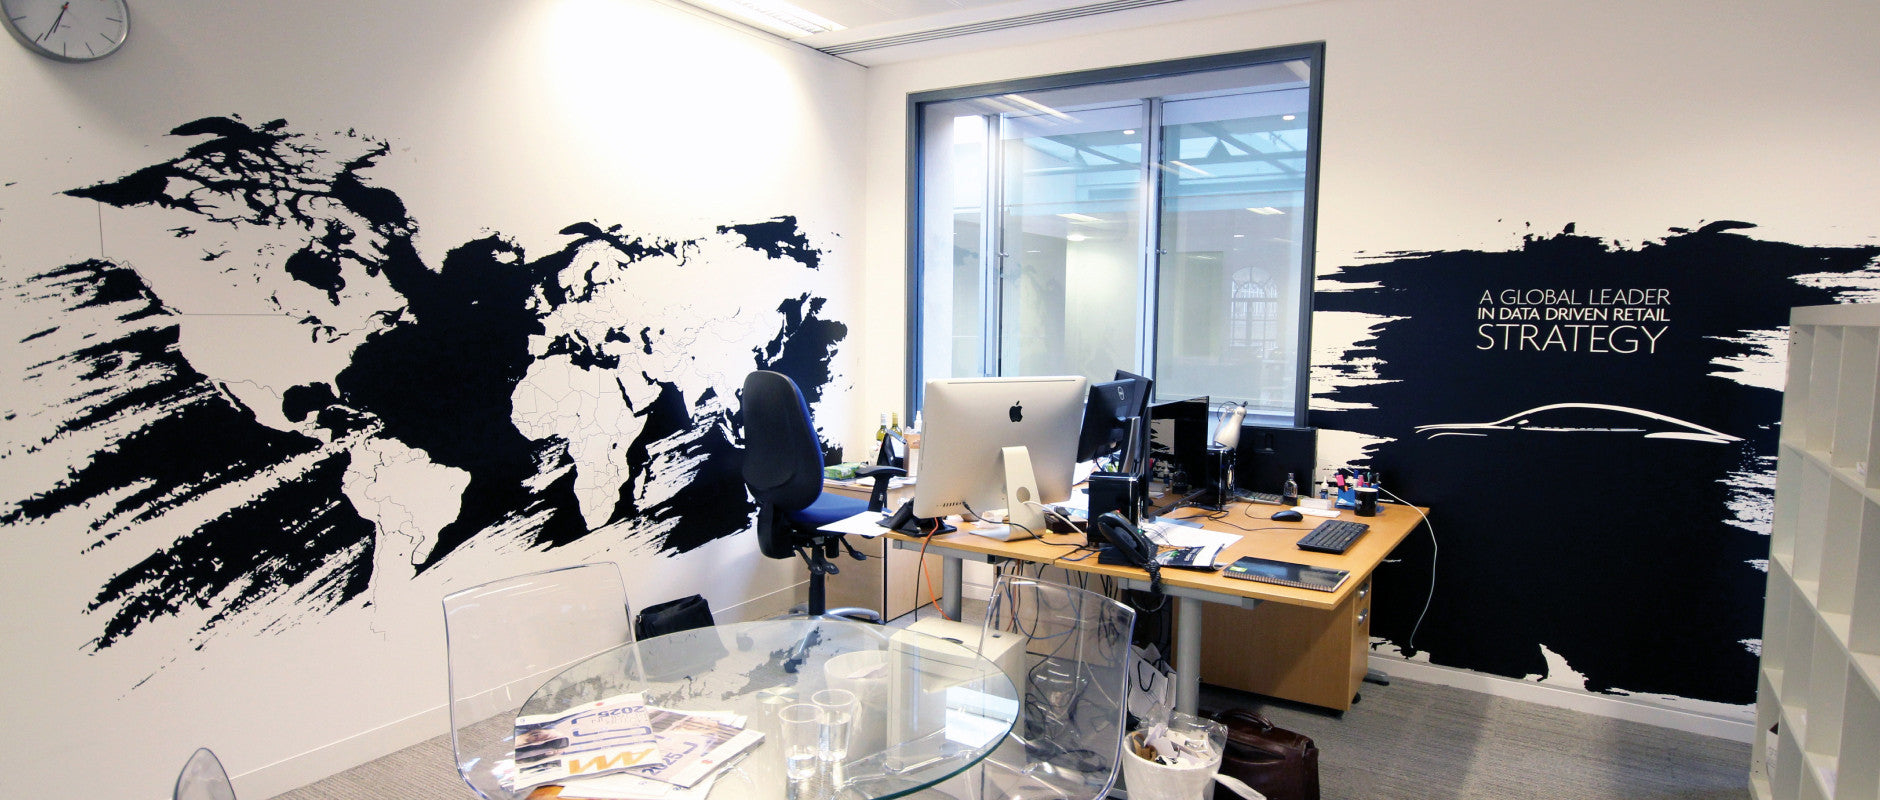 Office world map perfect world office world map e and map cirpa office world map unique world office wall murals branding map on world gumiabroncs Images